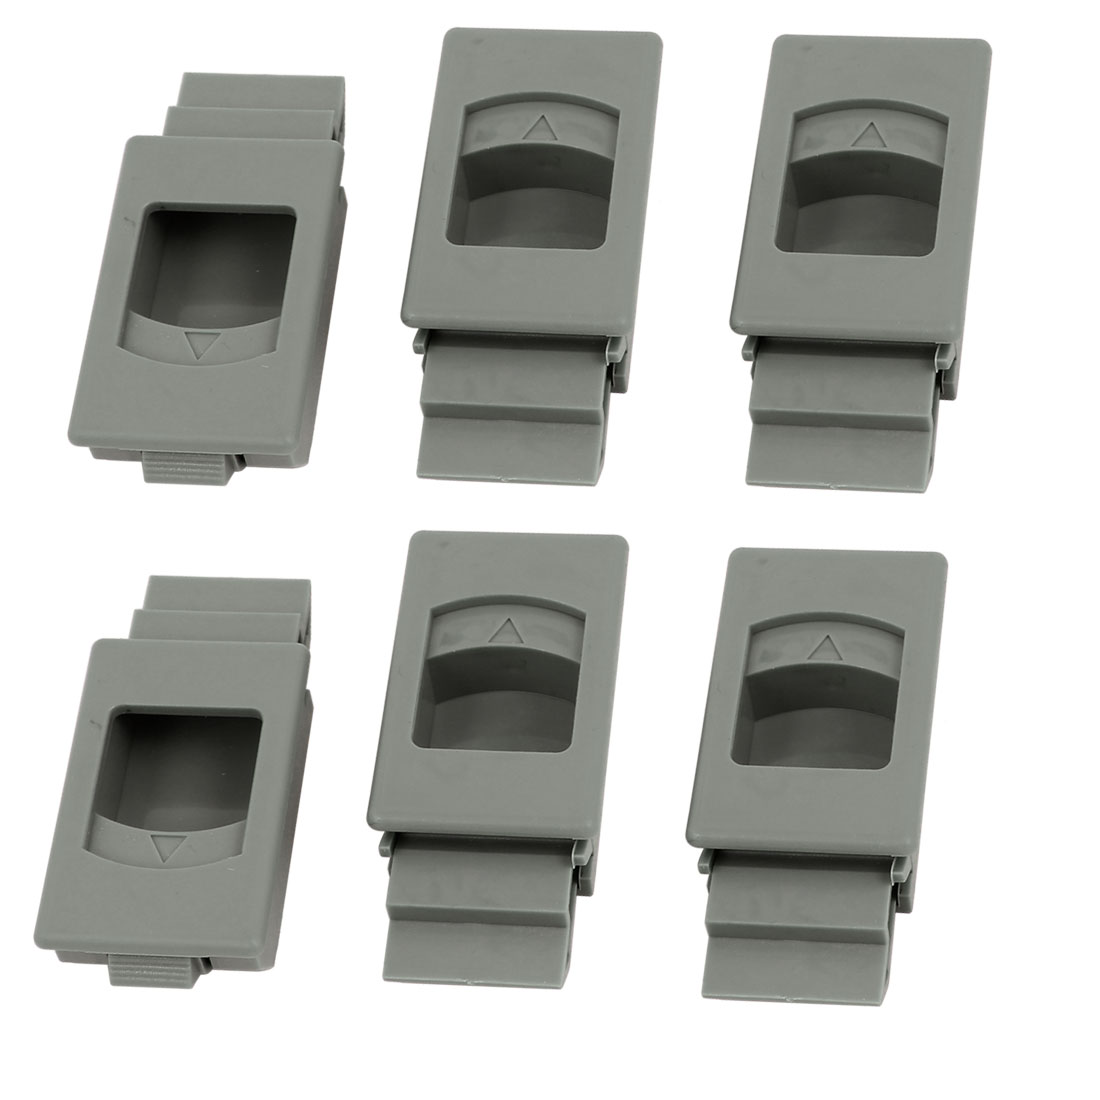 Window Door Inside Pull Rectangular Plastic Slide Latch Fittings 6pcs